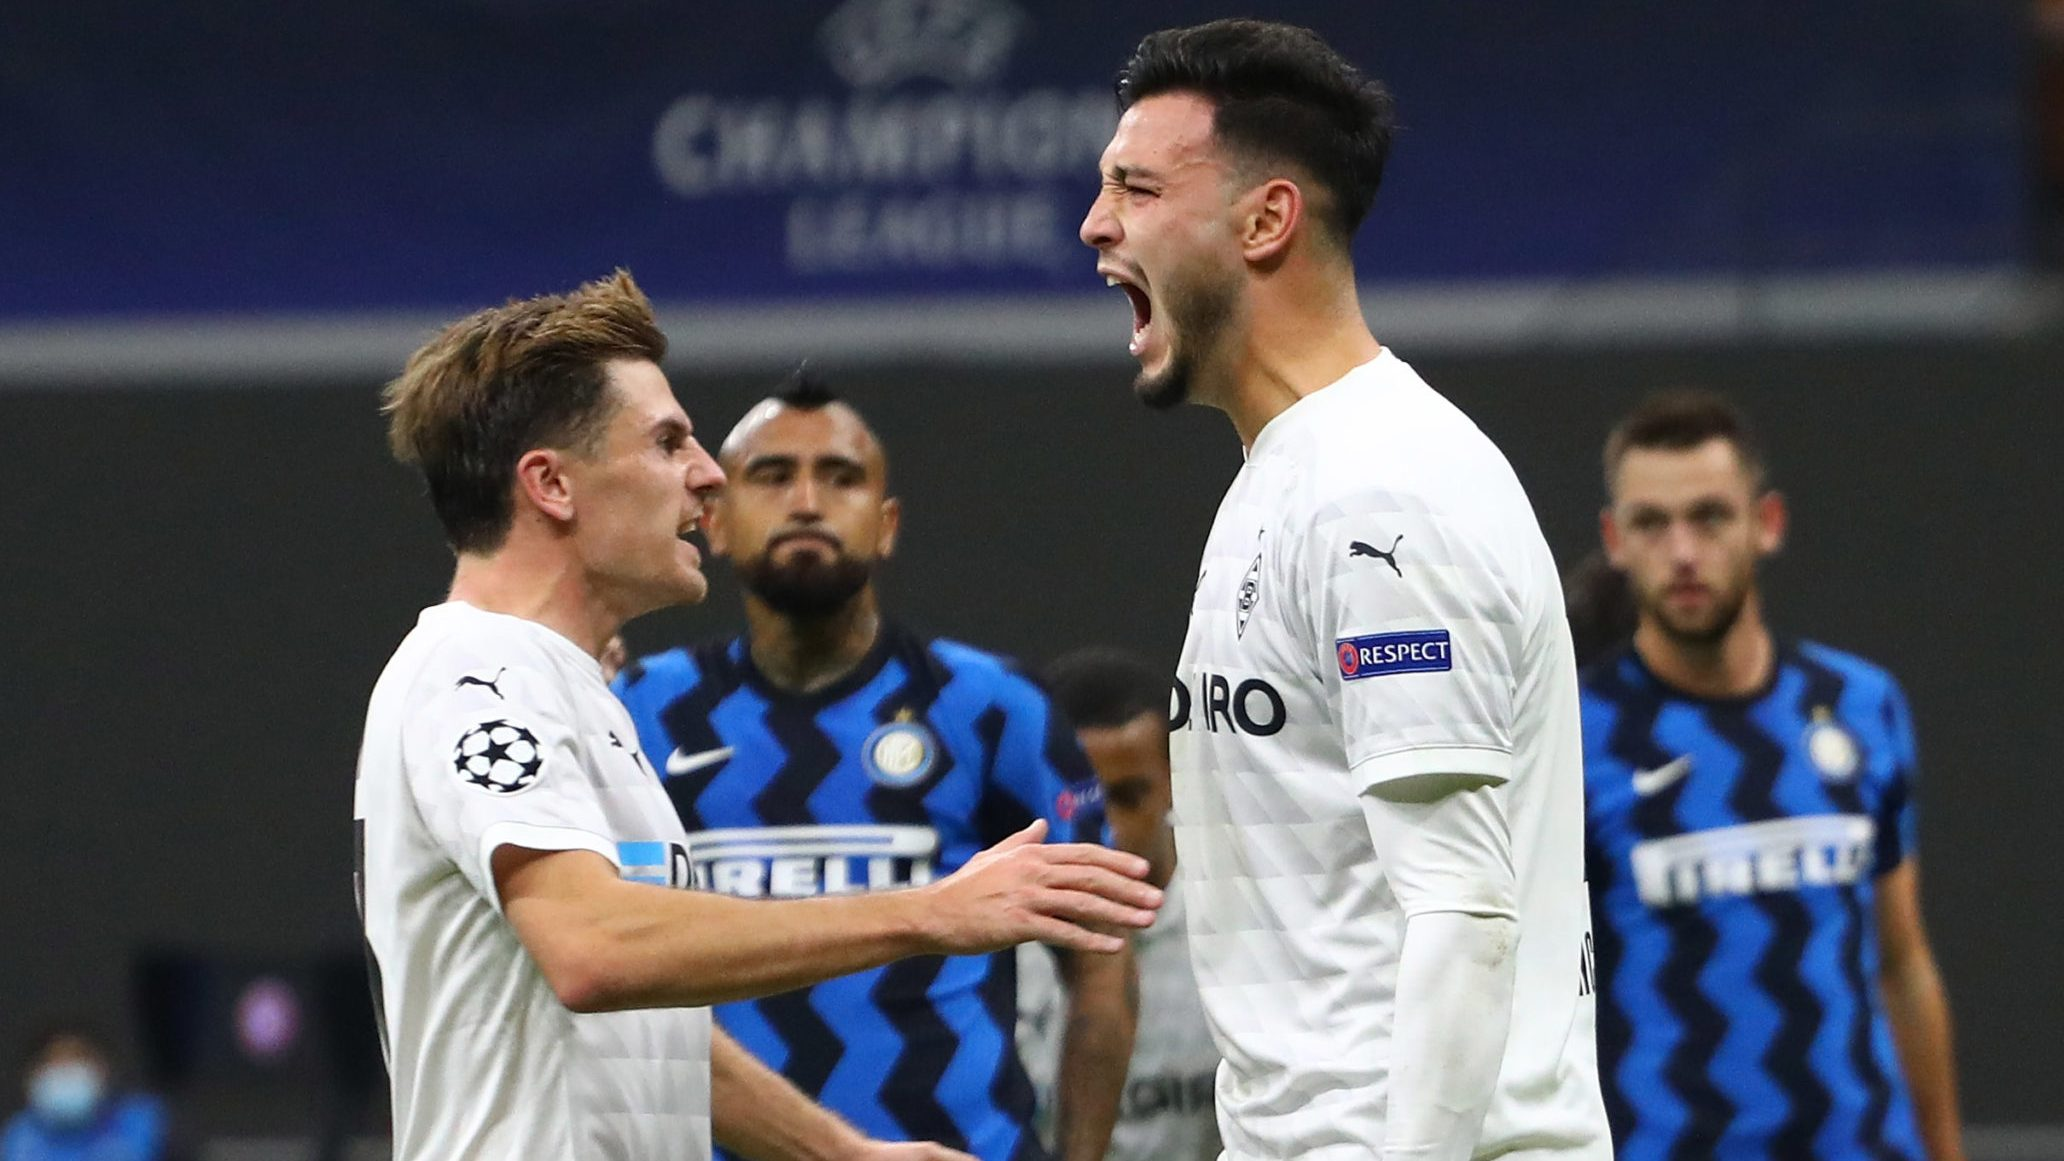 Bundesliga | Borussia Mönchengladbach denied late on in draw at Inter Milan